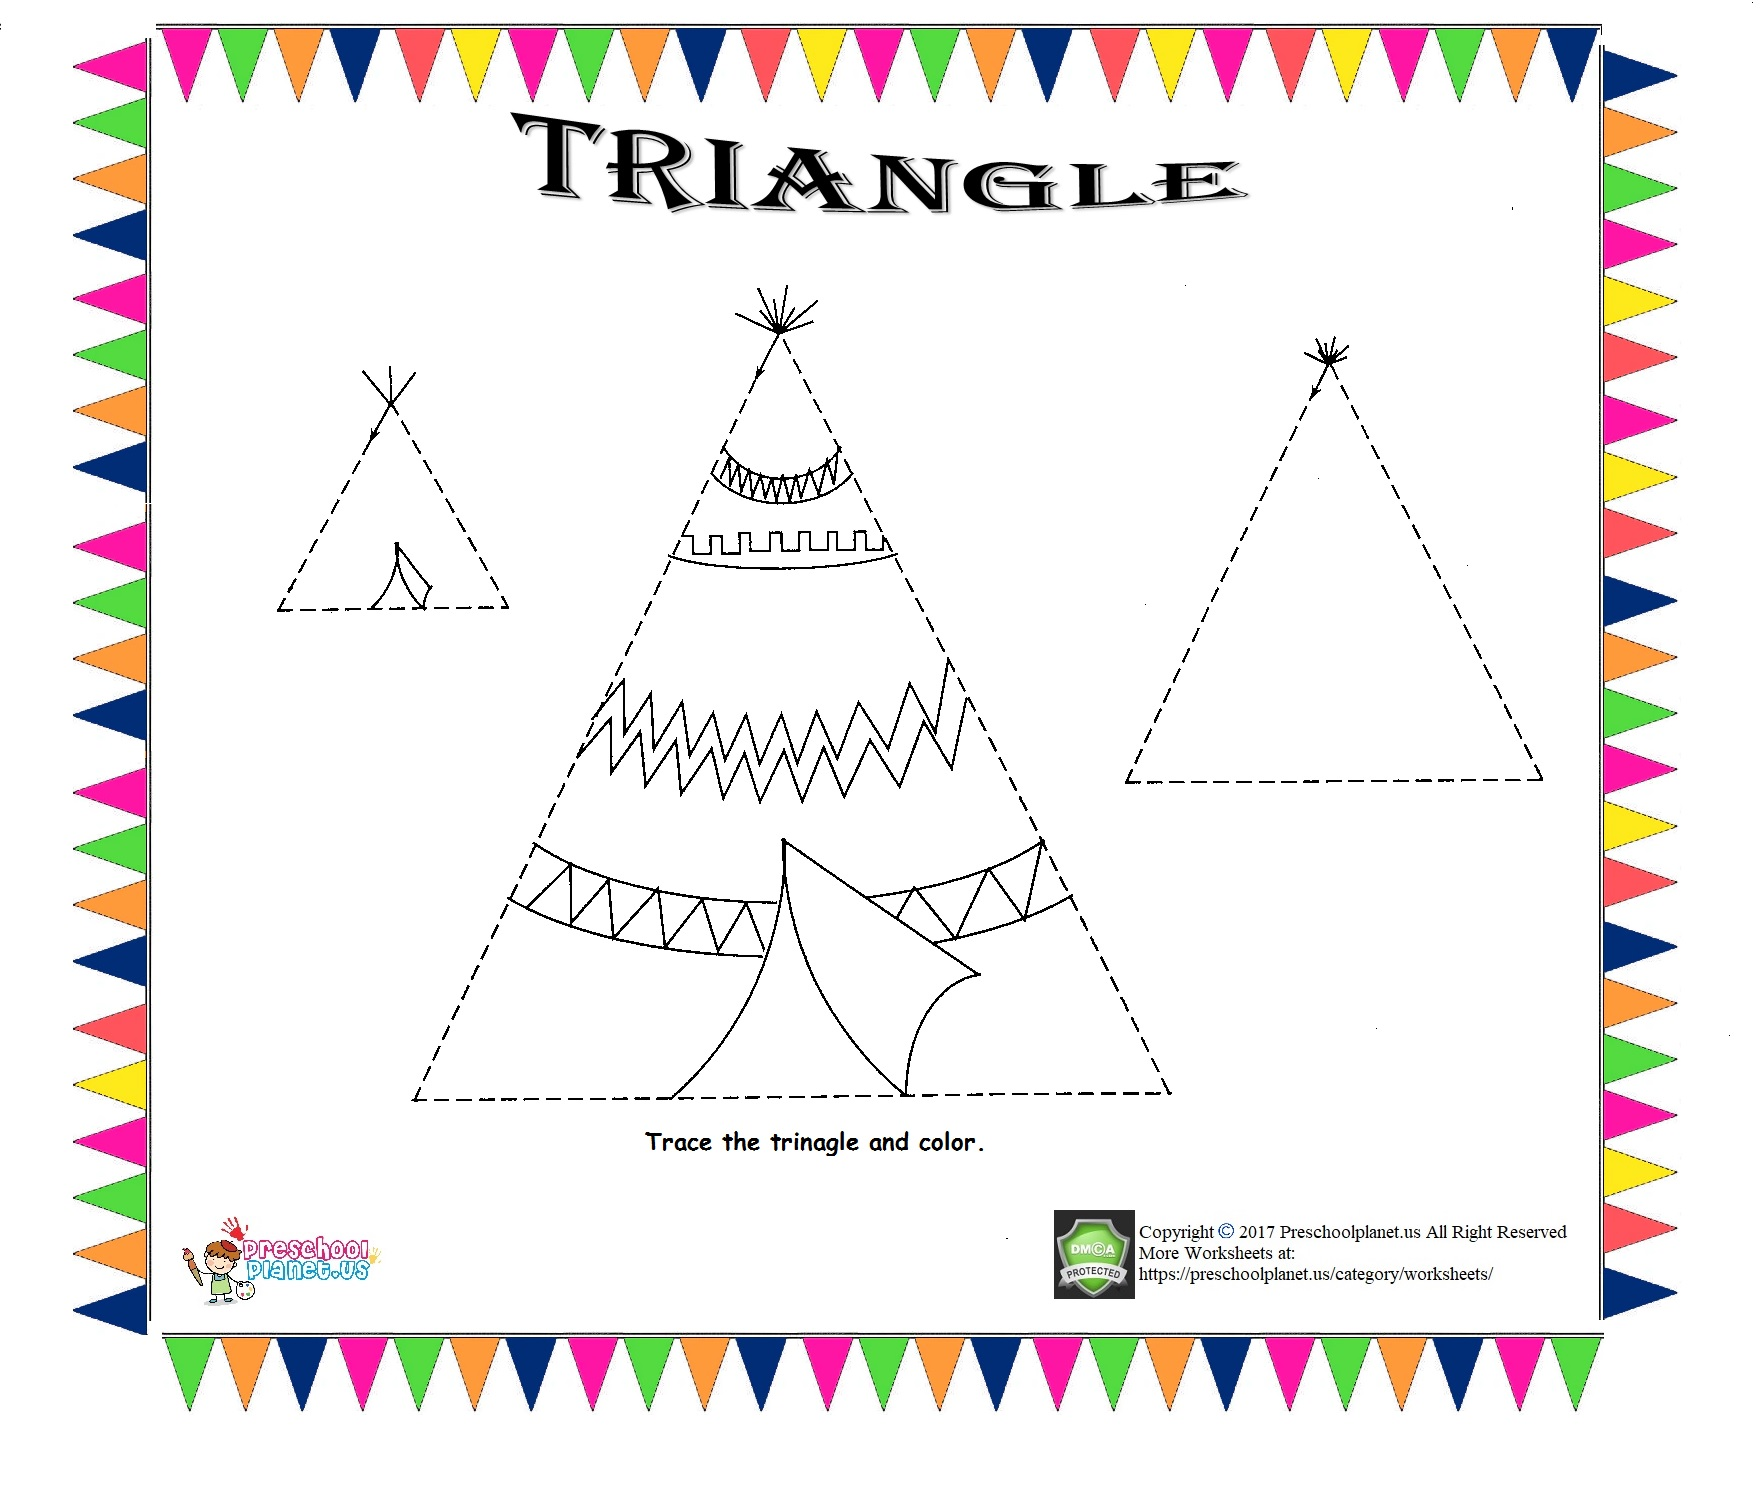 Triangle Worksheet For Preschoolers